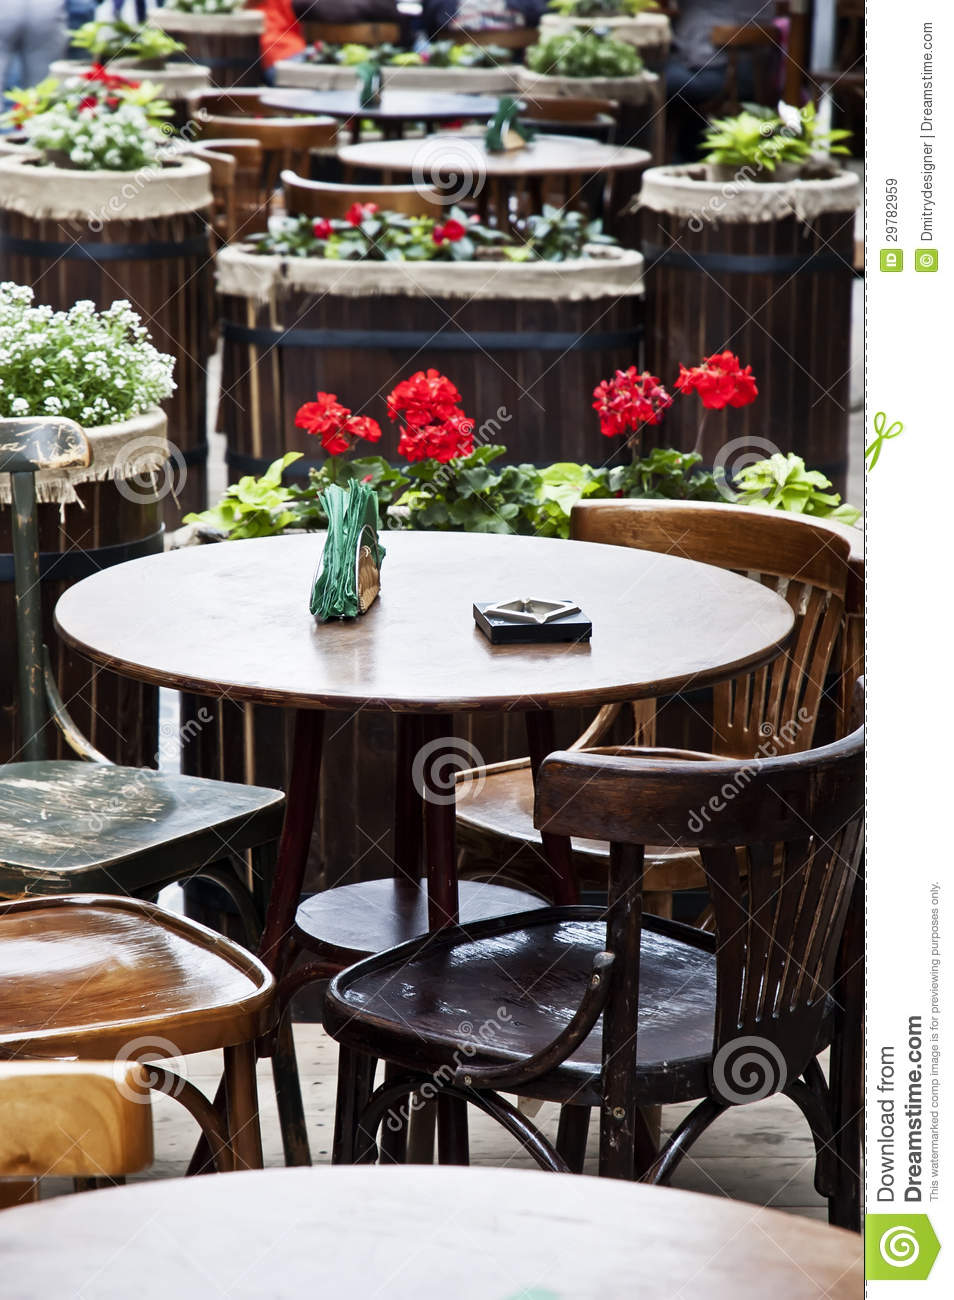 vintage table and chairs in a street cafe stock image. Black Bedroom Furniture Sets. Home Design Ideas